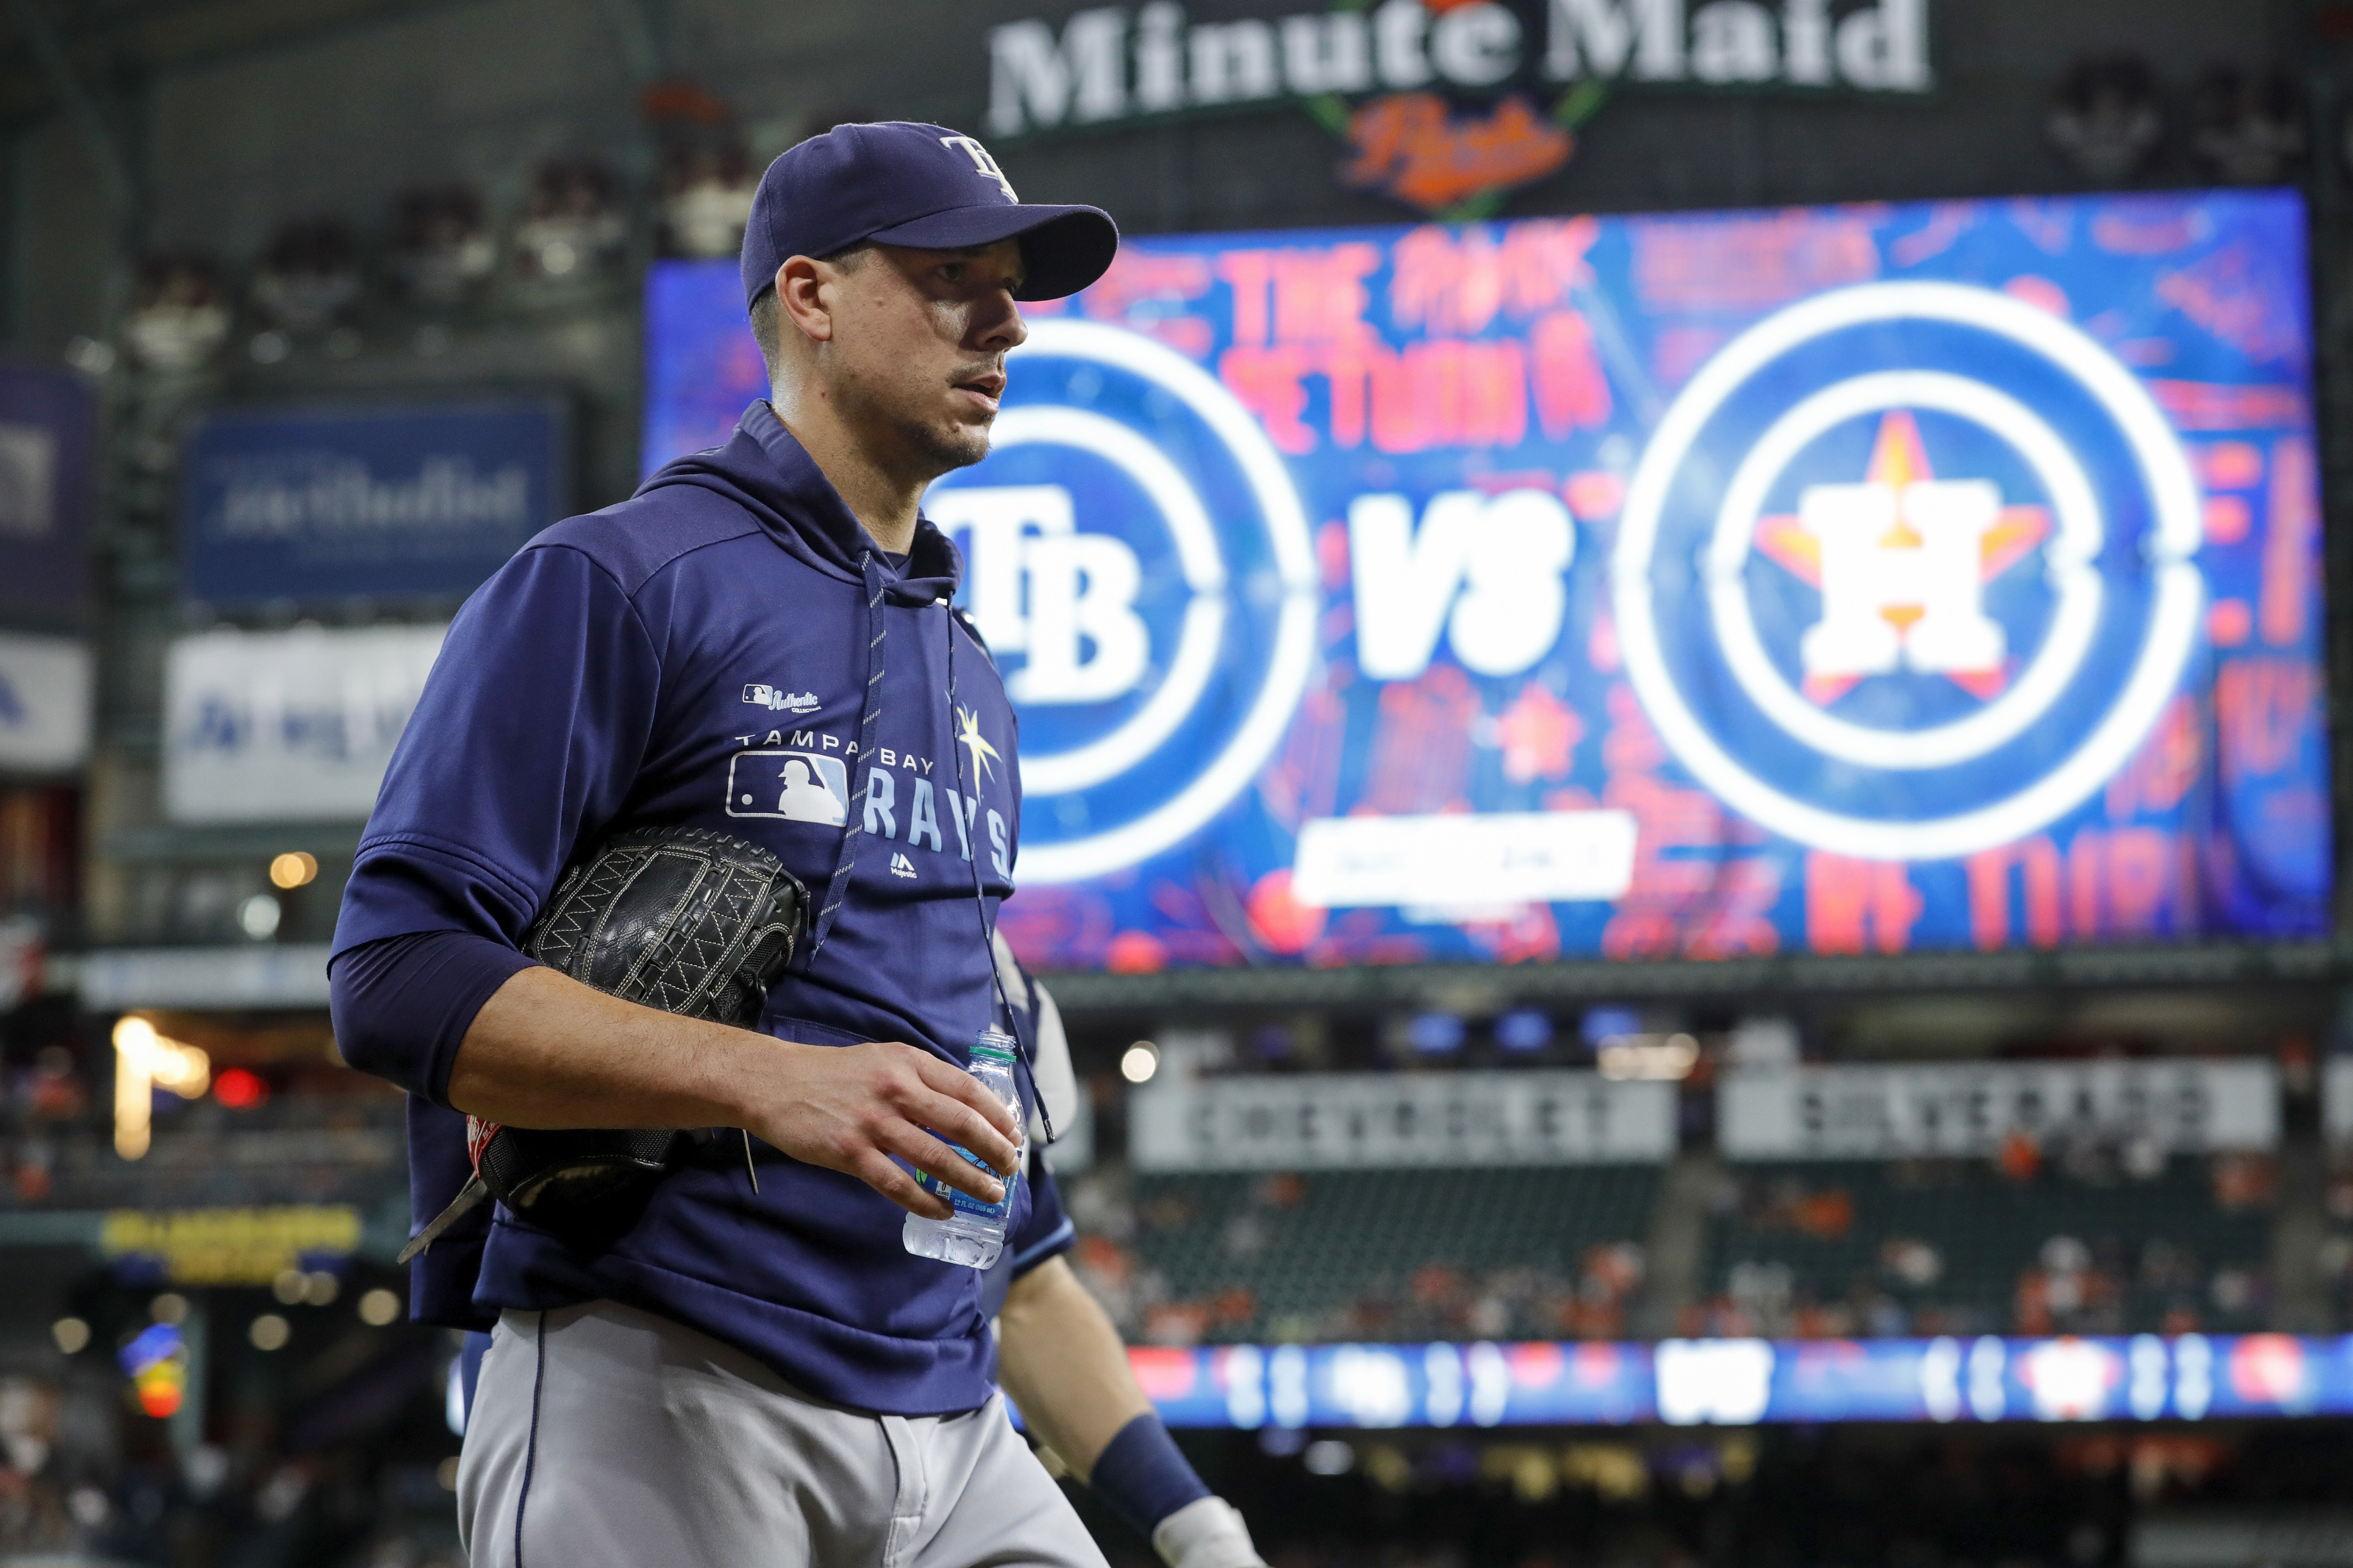 tampa bay rays charlie morton drawing the interest of 8 10 teams https calltothepen com 2020 11 10 charlie morton drawing the interest of 8 10 teams